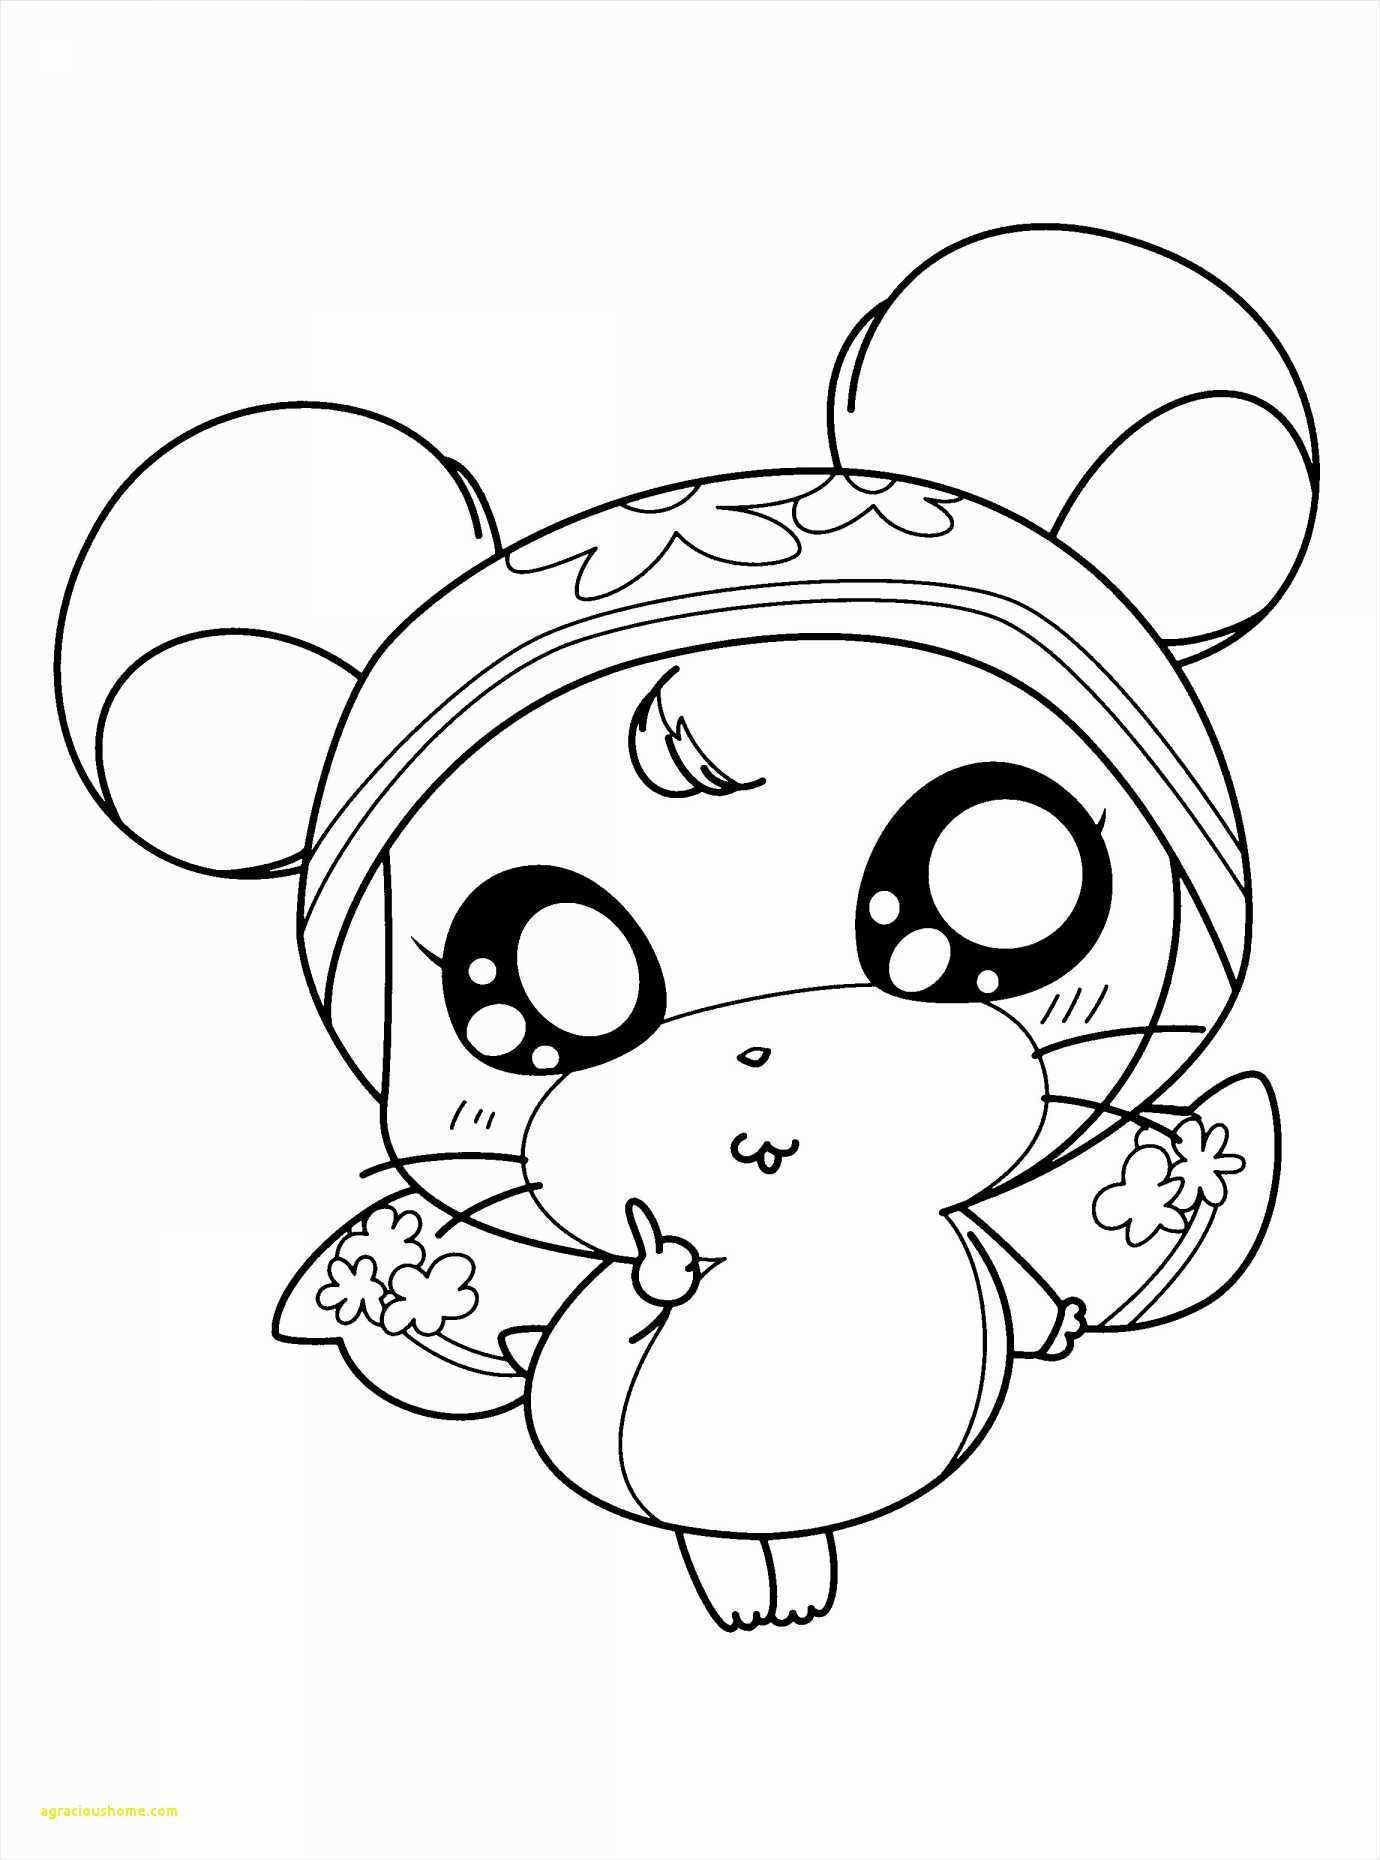 Printable Easter Coloring Pages Free Easter Coloring Pages ...